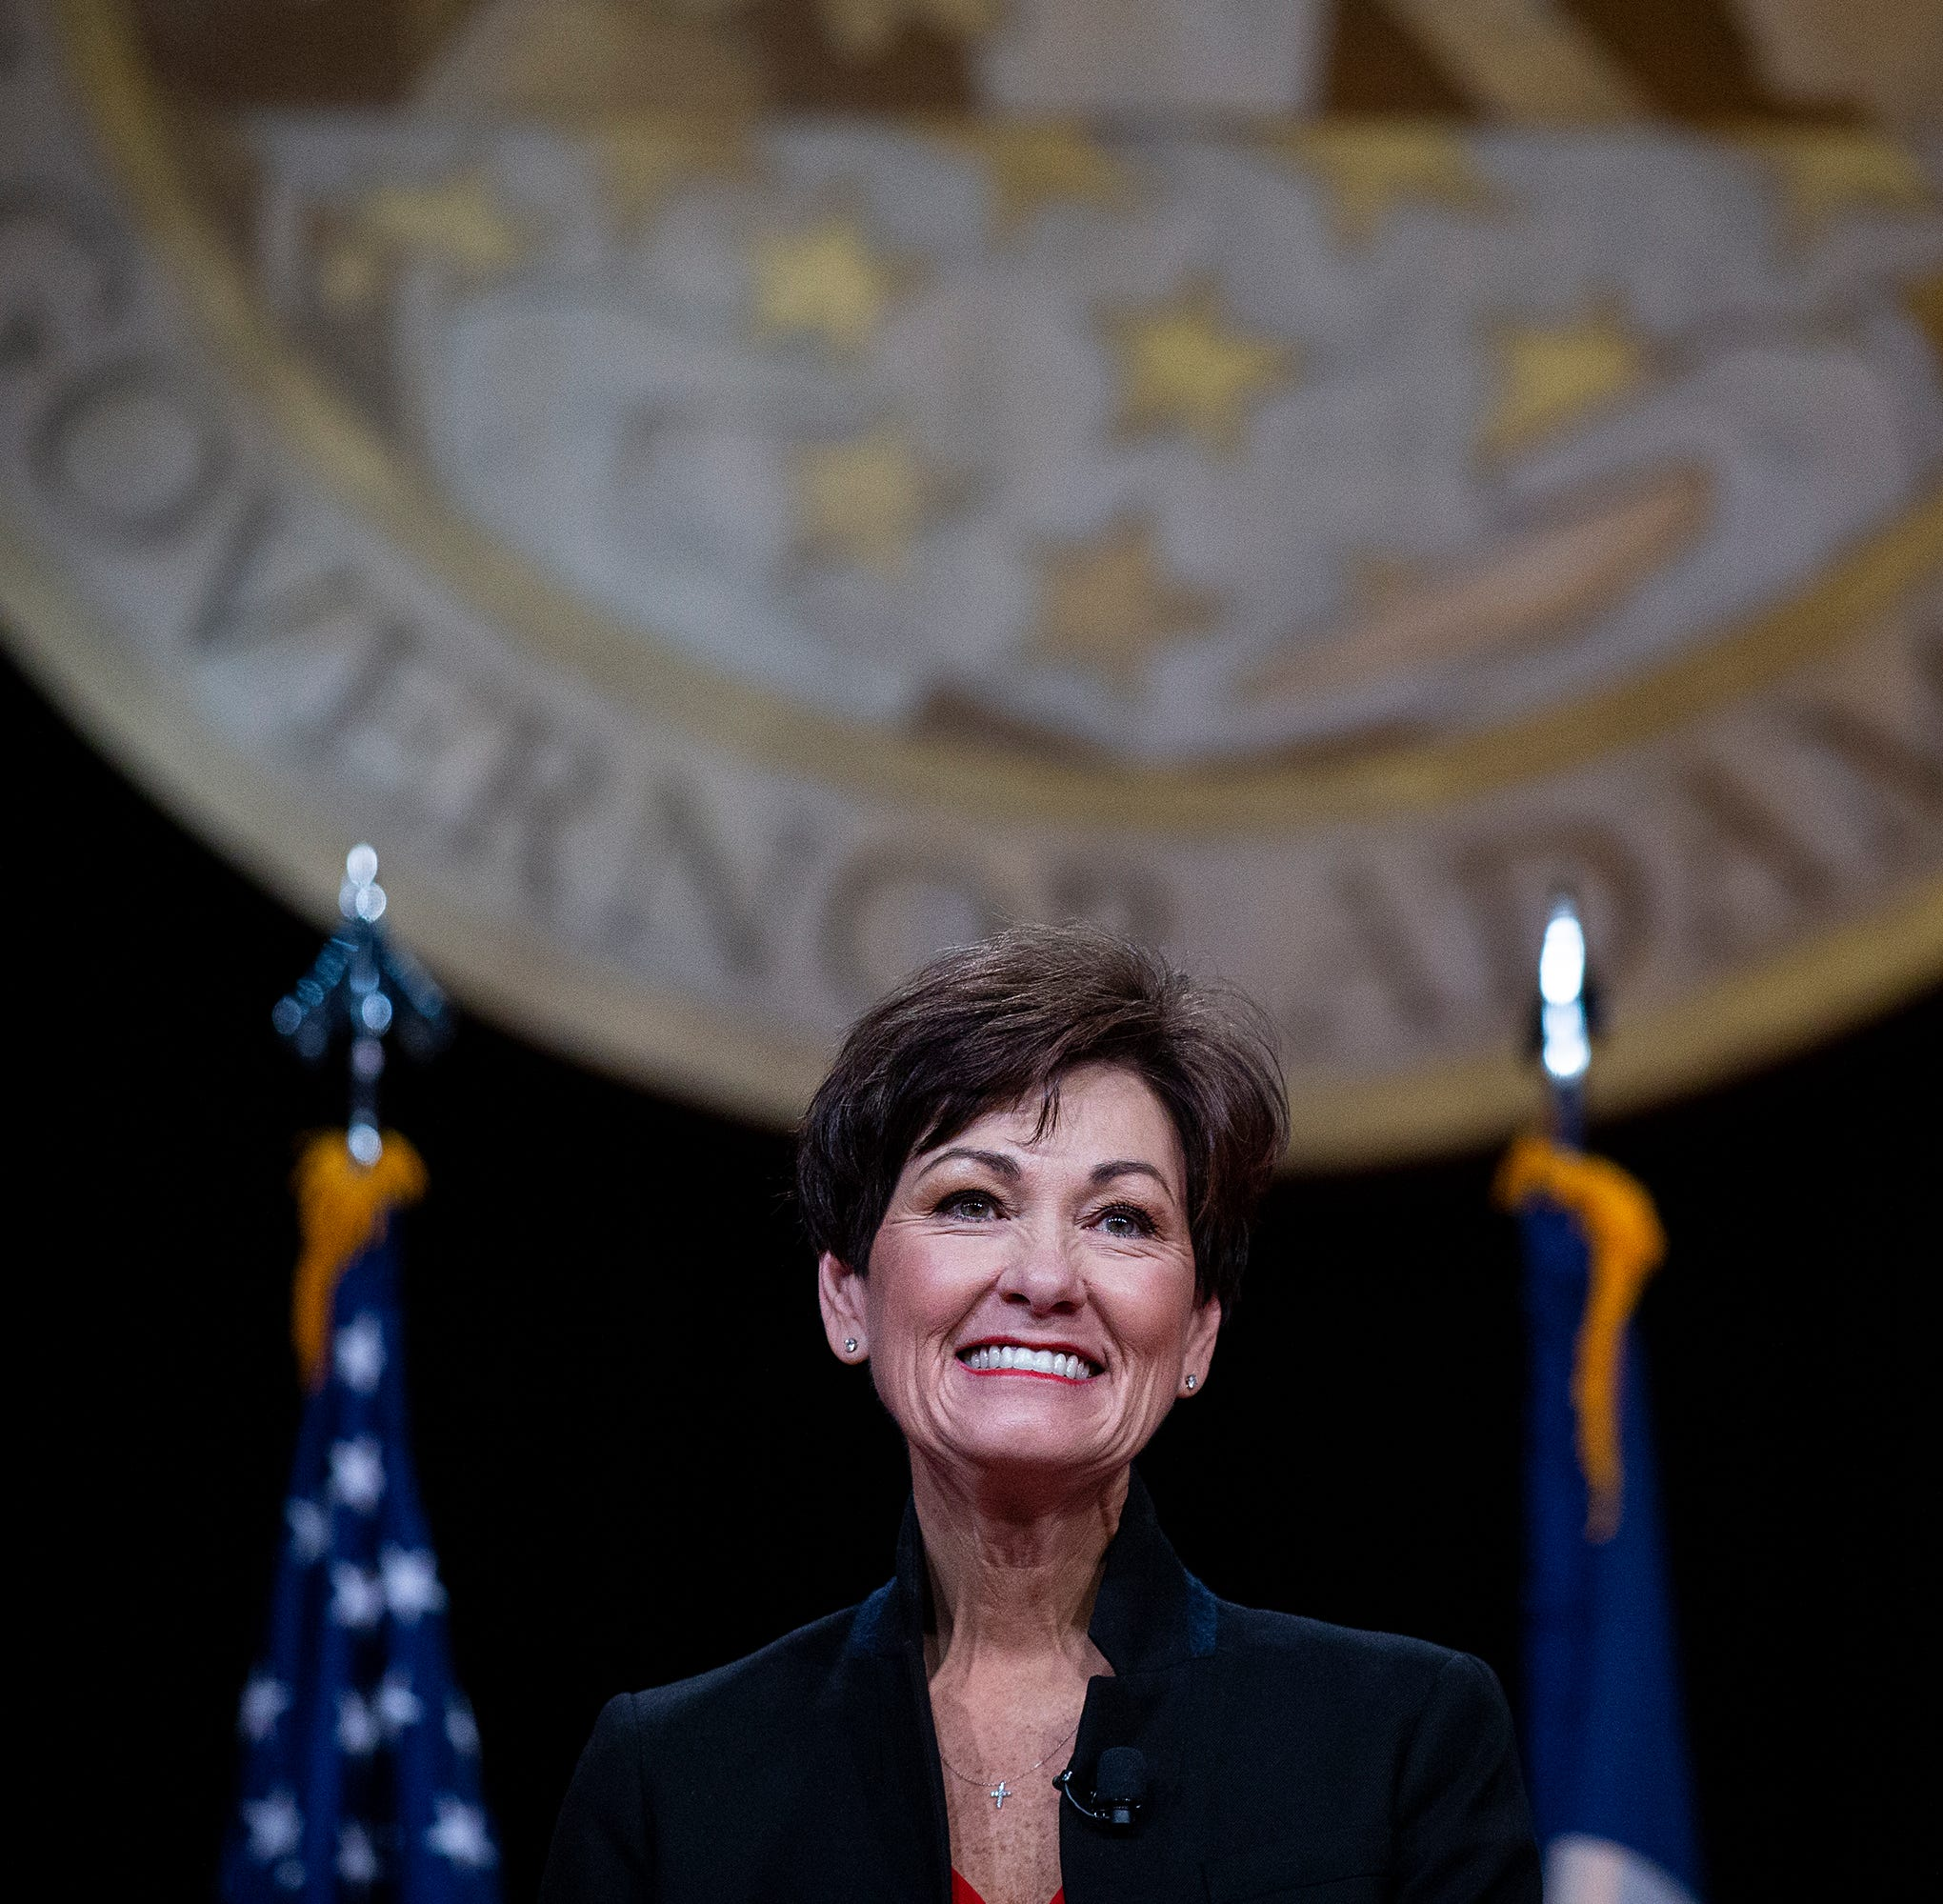 Kim Reynolds proposal would restore voting rights to felons who have served their sentences